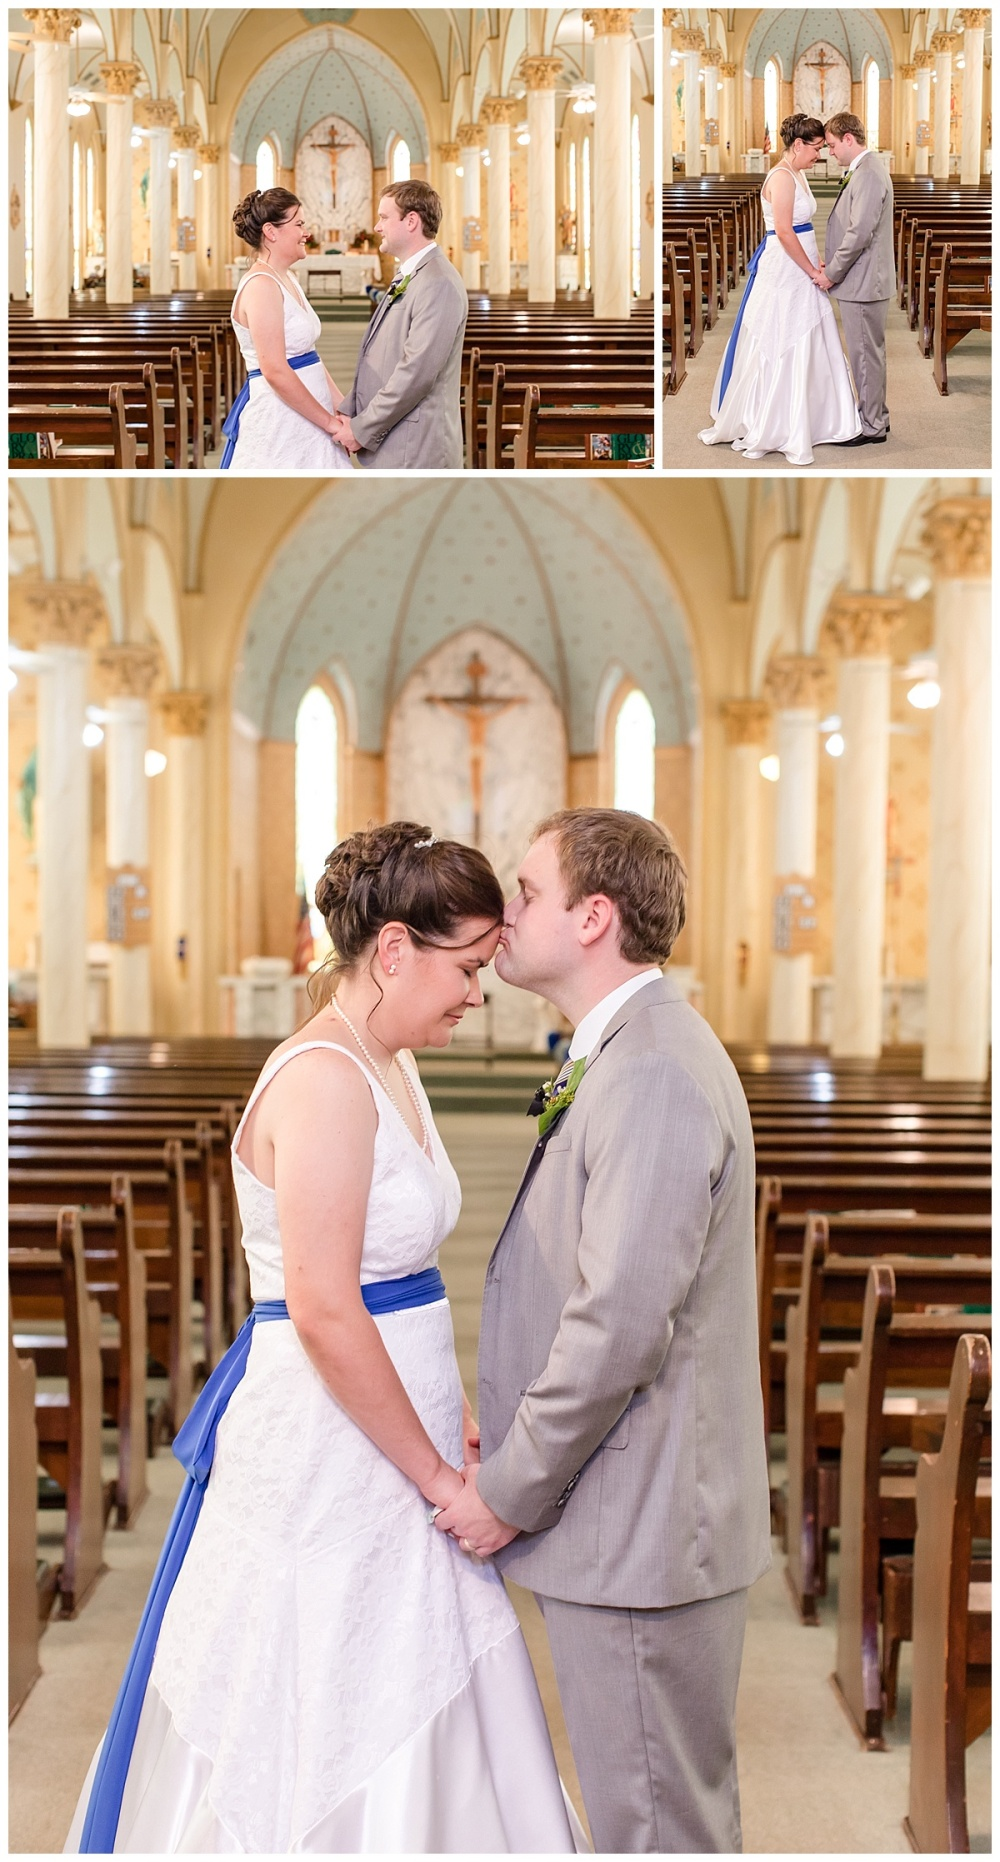 Texas-Wedding-Photographer-La-Coste-Our-Lady-Of-Grace-Church-Bride-Groom-Lego-Theme-Carly-Barton-Photography_0024.jpg